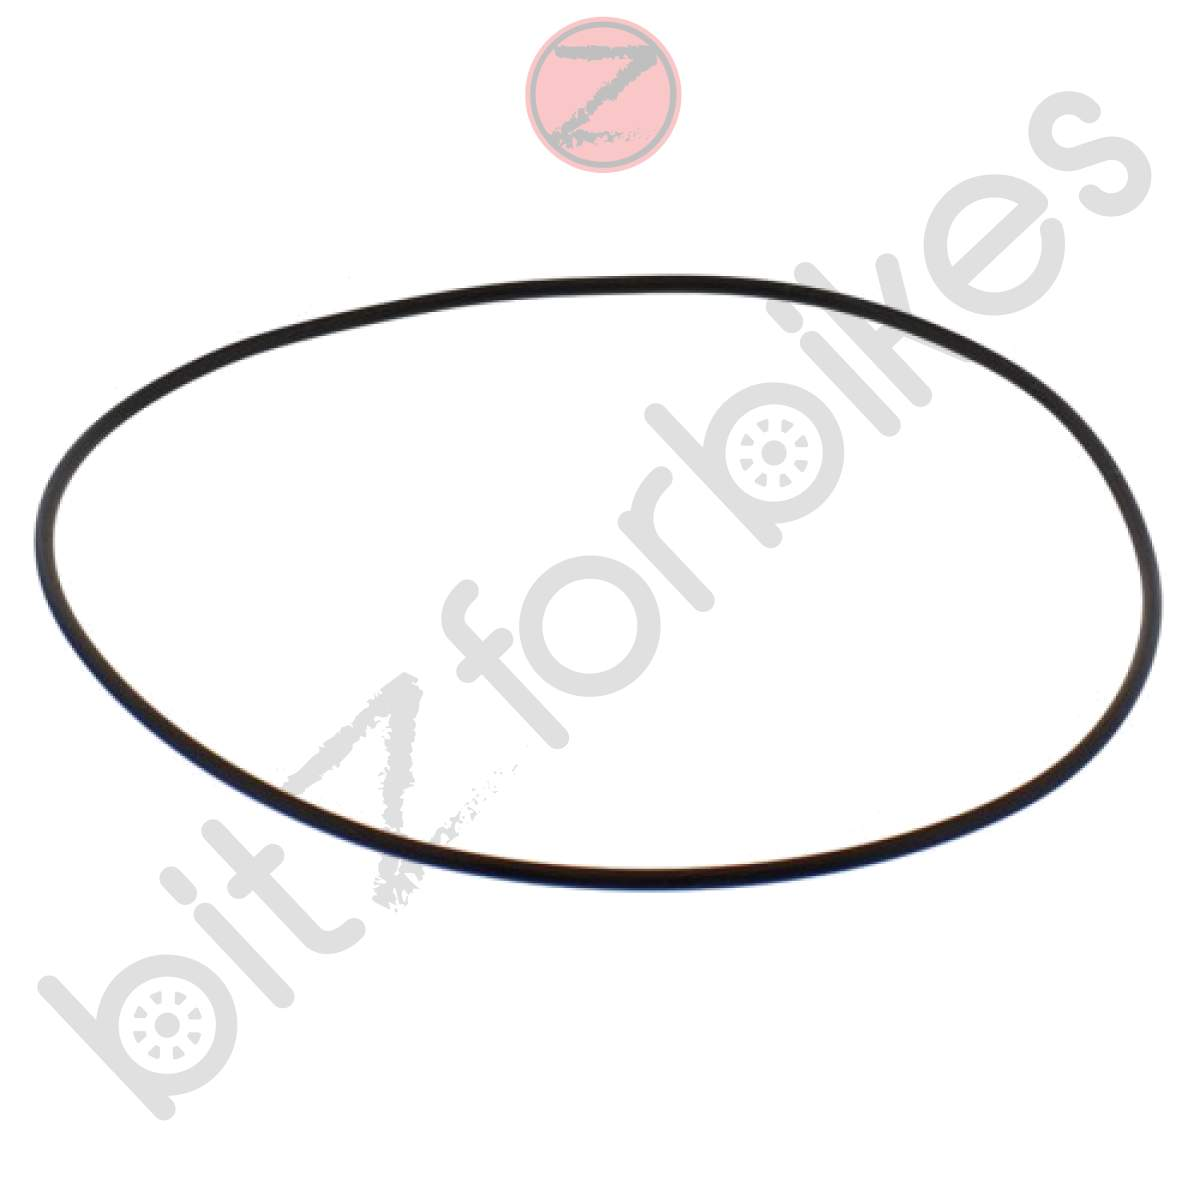 Valve Cover Gasket Kymco Agility 50 R12 4T Carry (2011